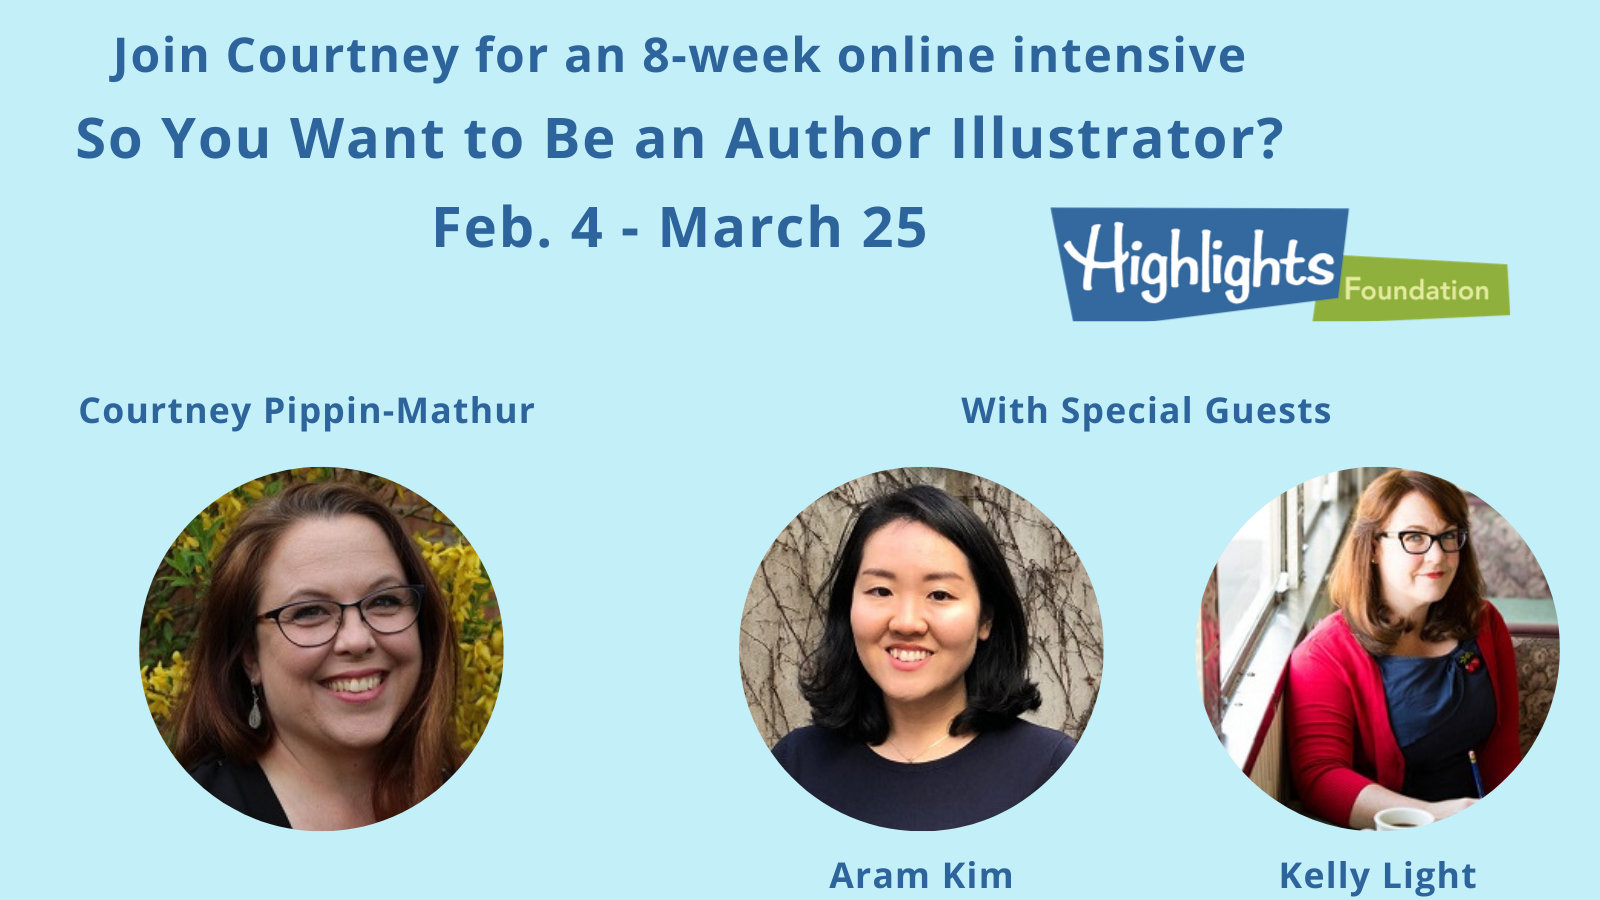 So You Want to Be an Author/Illustrator?